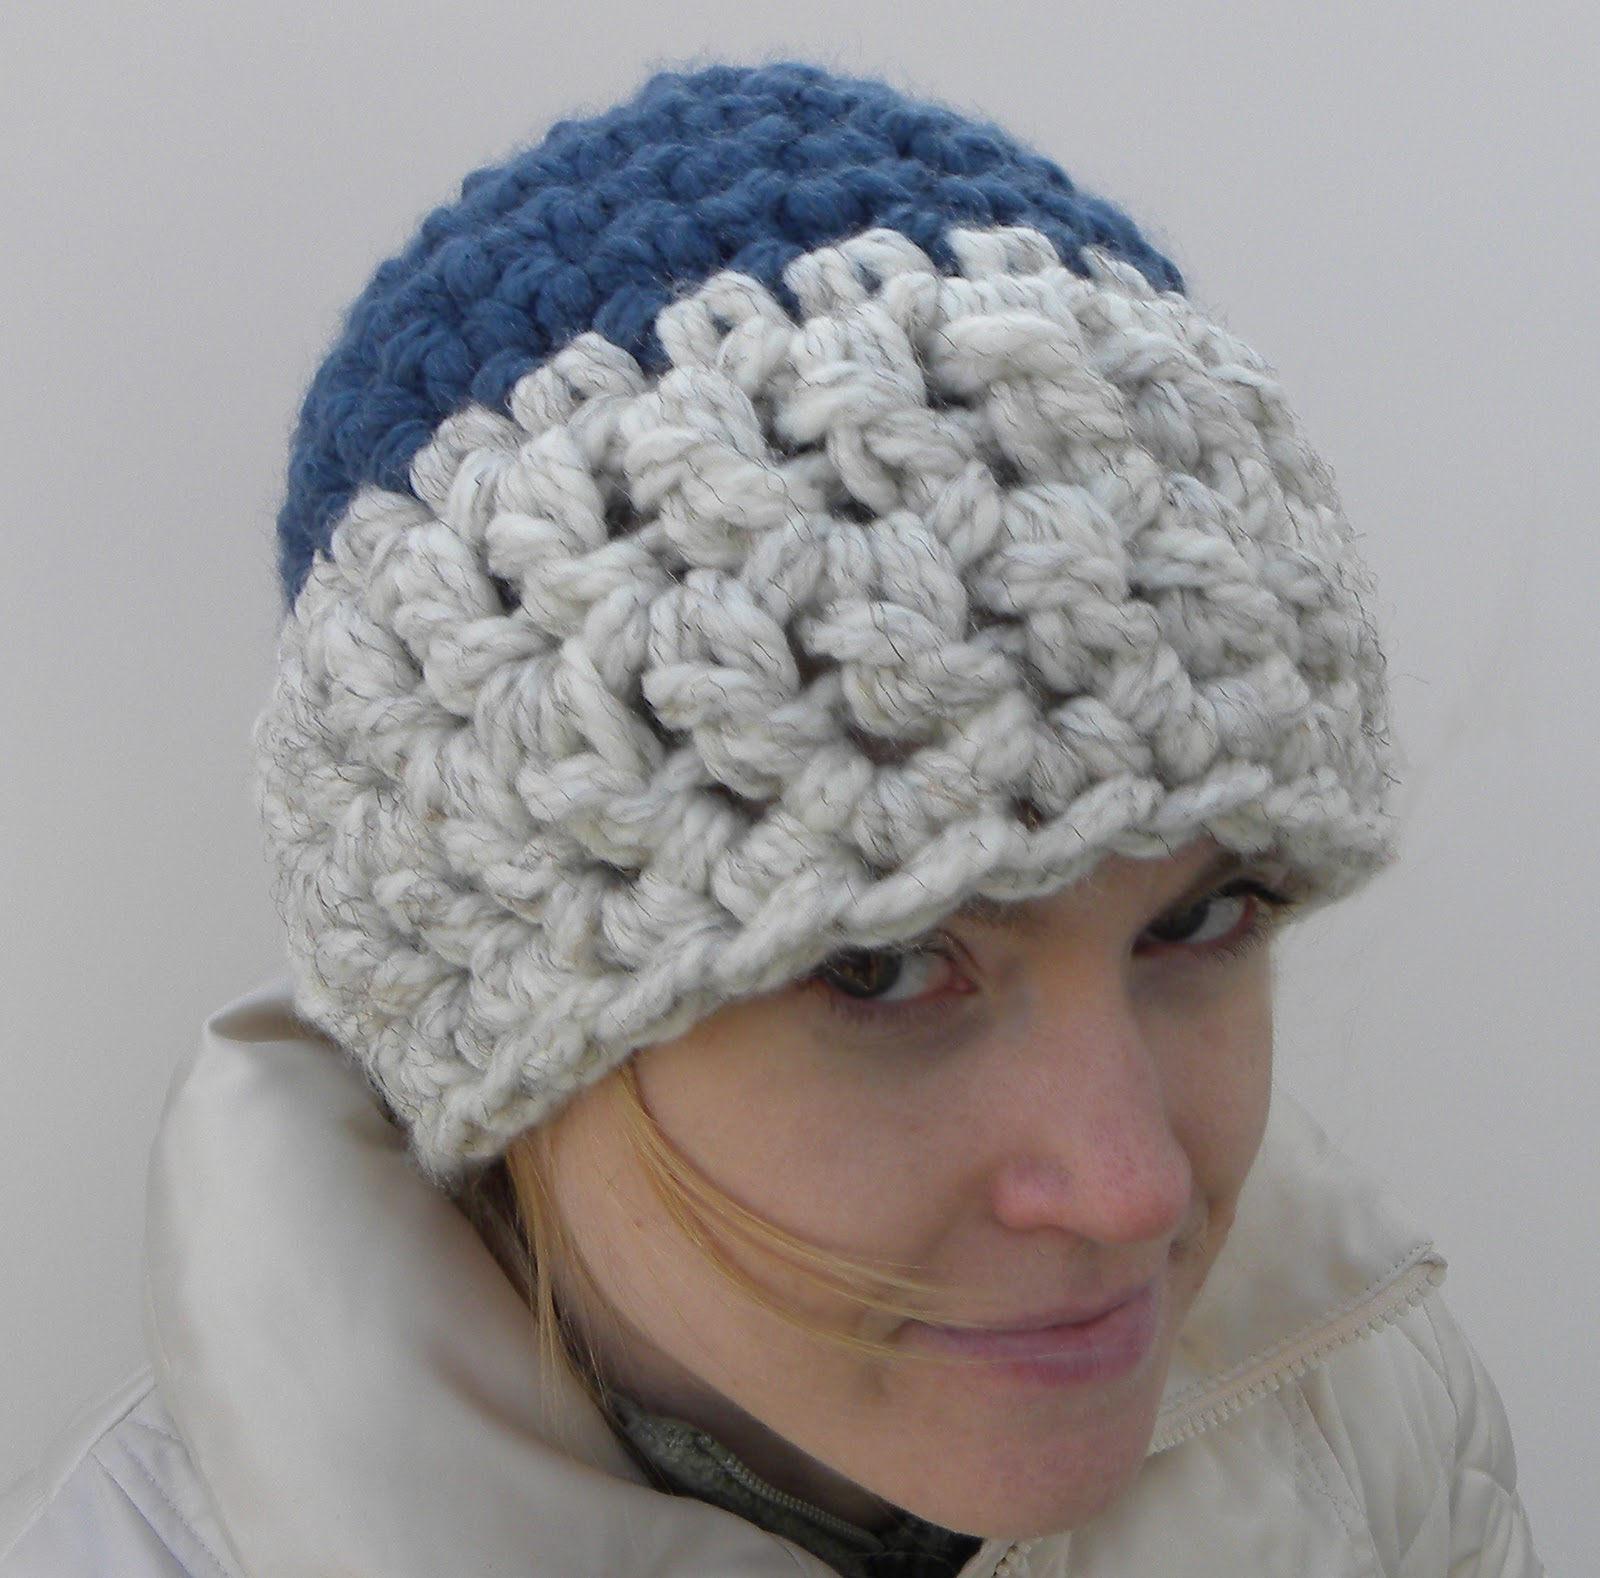 Crochet Pattern Helmet Hat : flower Gurl crafts: Crochet Beanie Hat